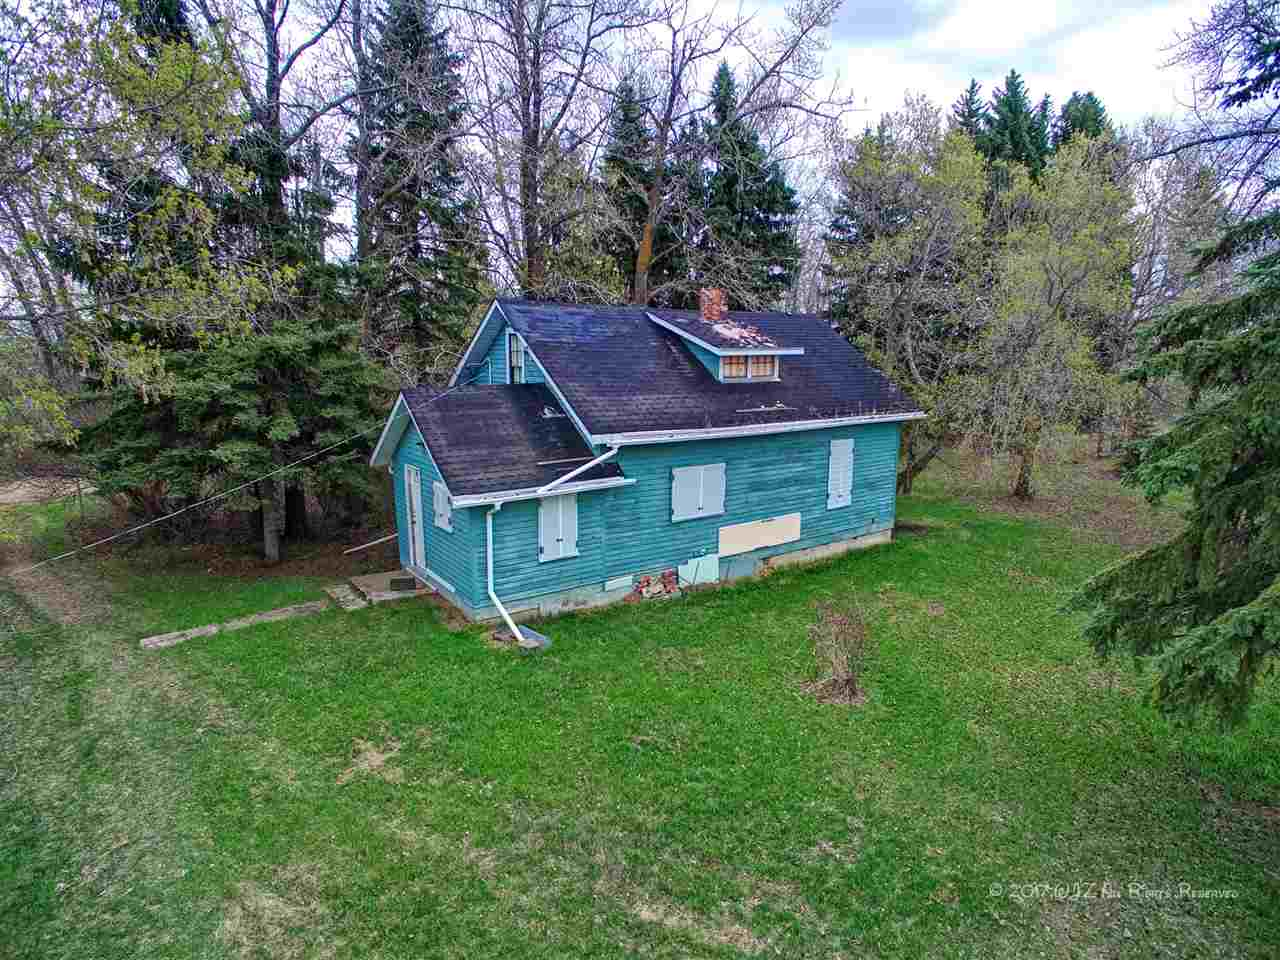 Bordering the town of Bruderheim is this 6 acre parcel of land with an older three bedroom home and several out buildings.